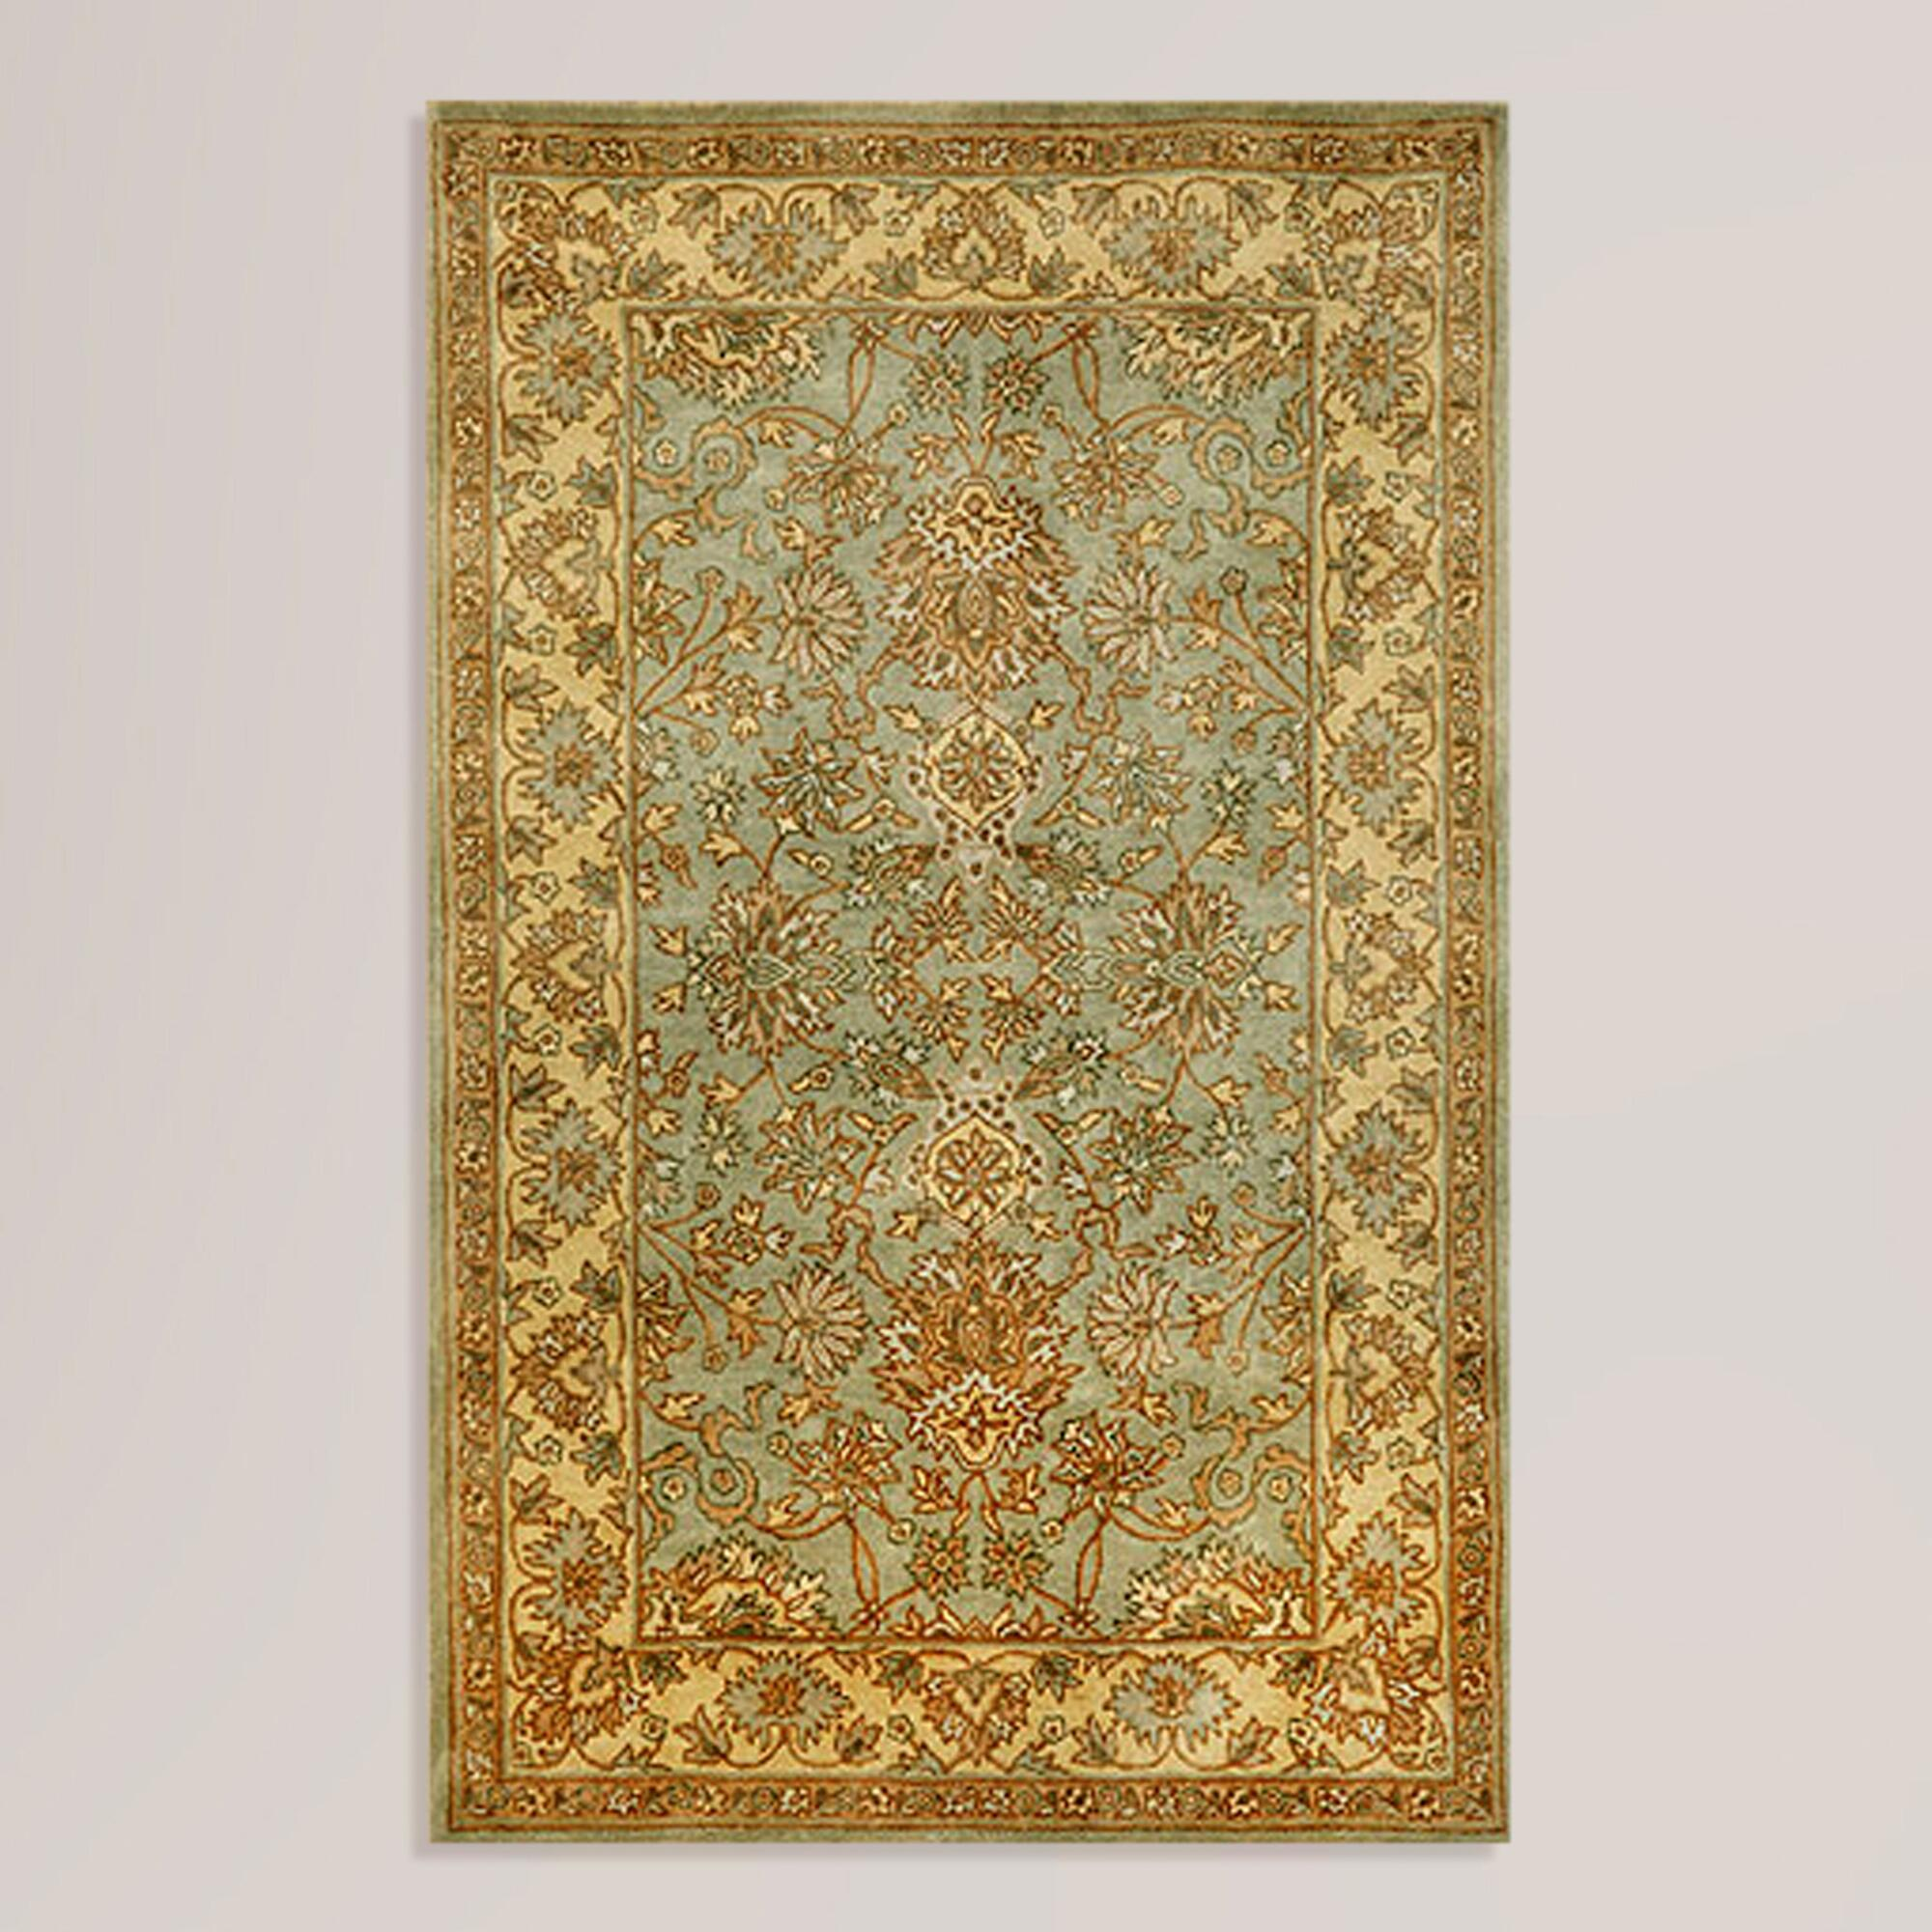 Rugs -Our light blue area rug evokes the artistry of stained glass windows with its geometric tile motif inspired by Persian texti les. Power-loomed from a soft, synthetic yarn, this affordable rug is antimicrobial, stain-resistant and boasts a soothing underfoot feel.